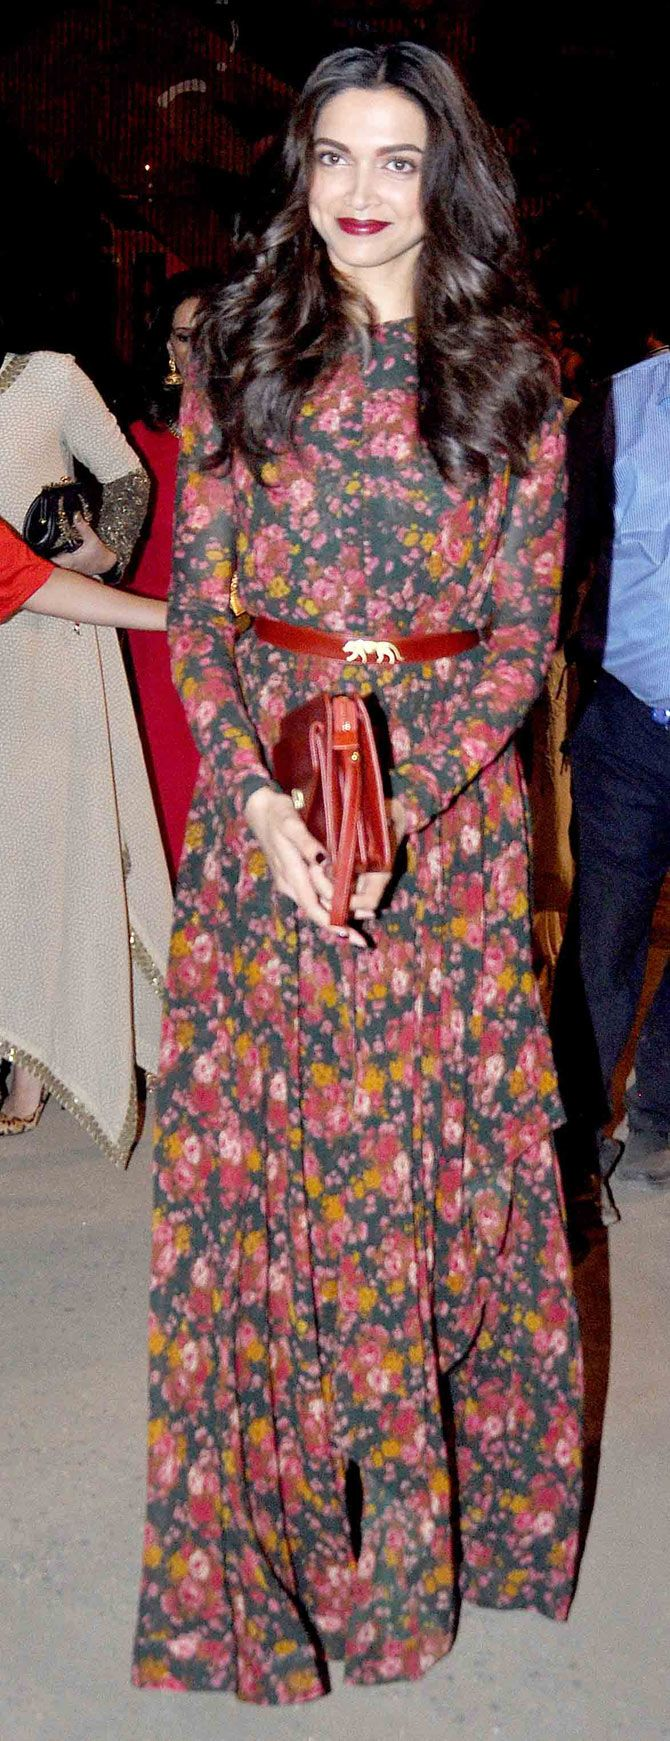 Photos - Top Bollywood stars Deepika Padukone, Kajol, Rani Mukerji, Sridevi, Kalki Koechlin, Neha Dhupia and a host of popular faces were in attendance in their fashionable best at the fashion extravaganza.